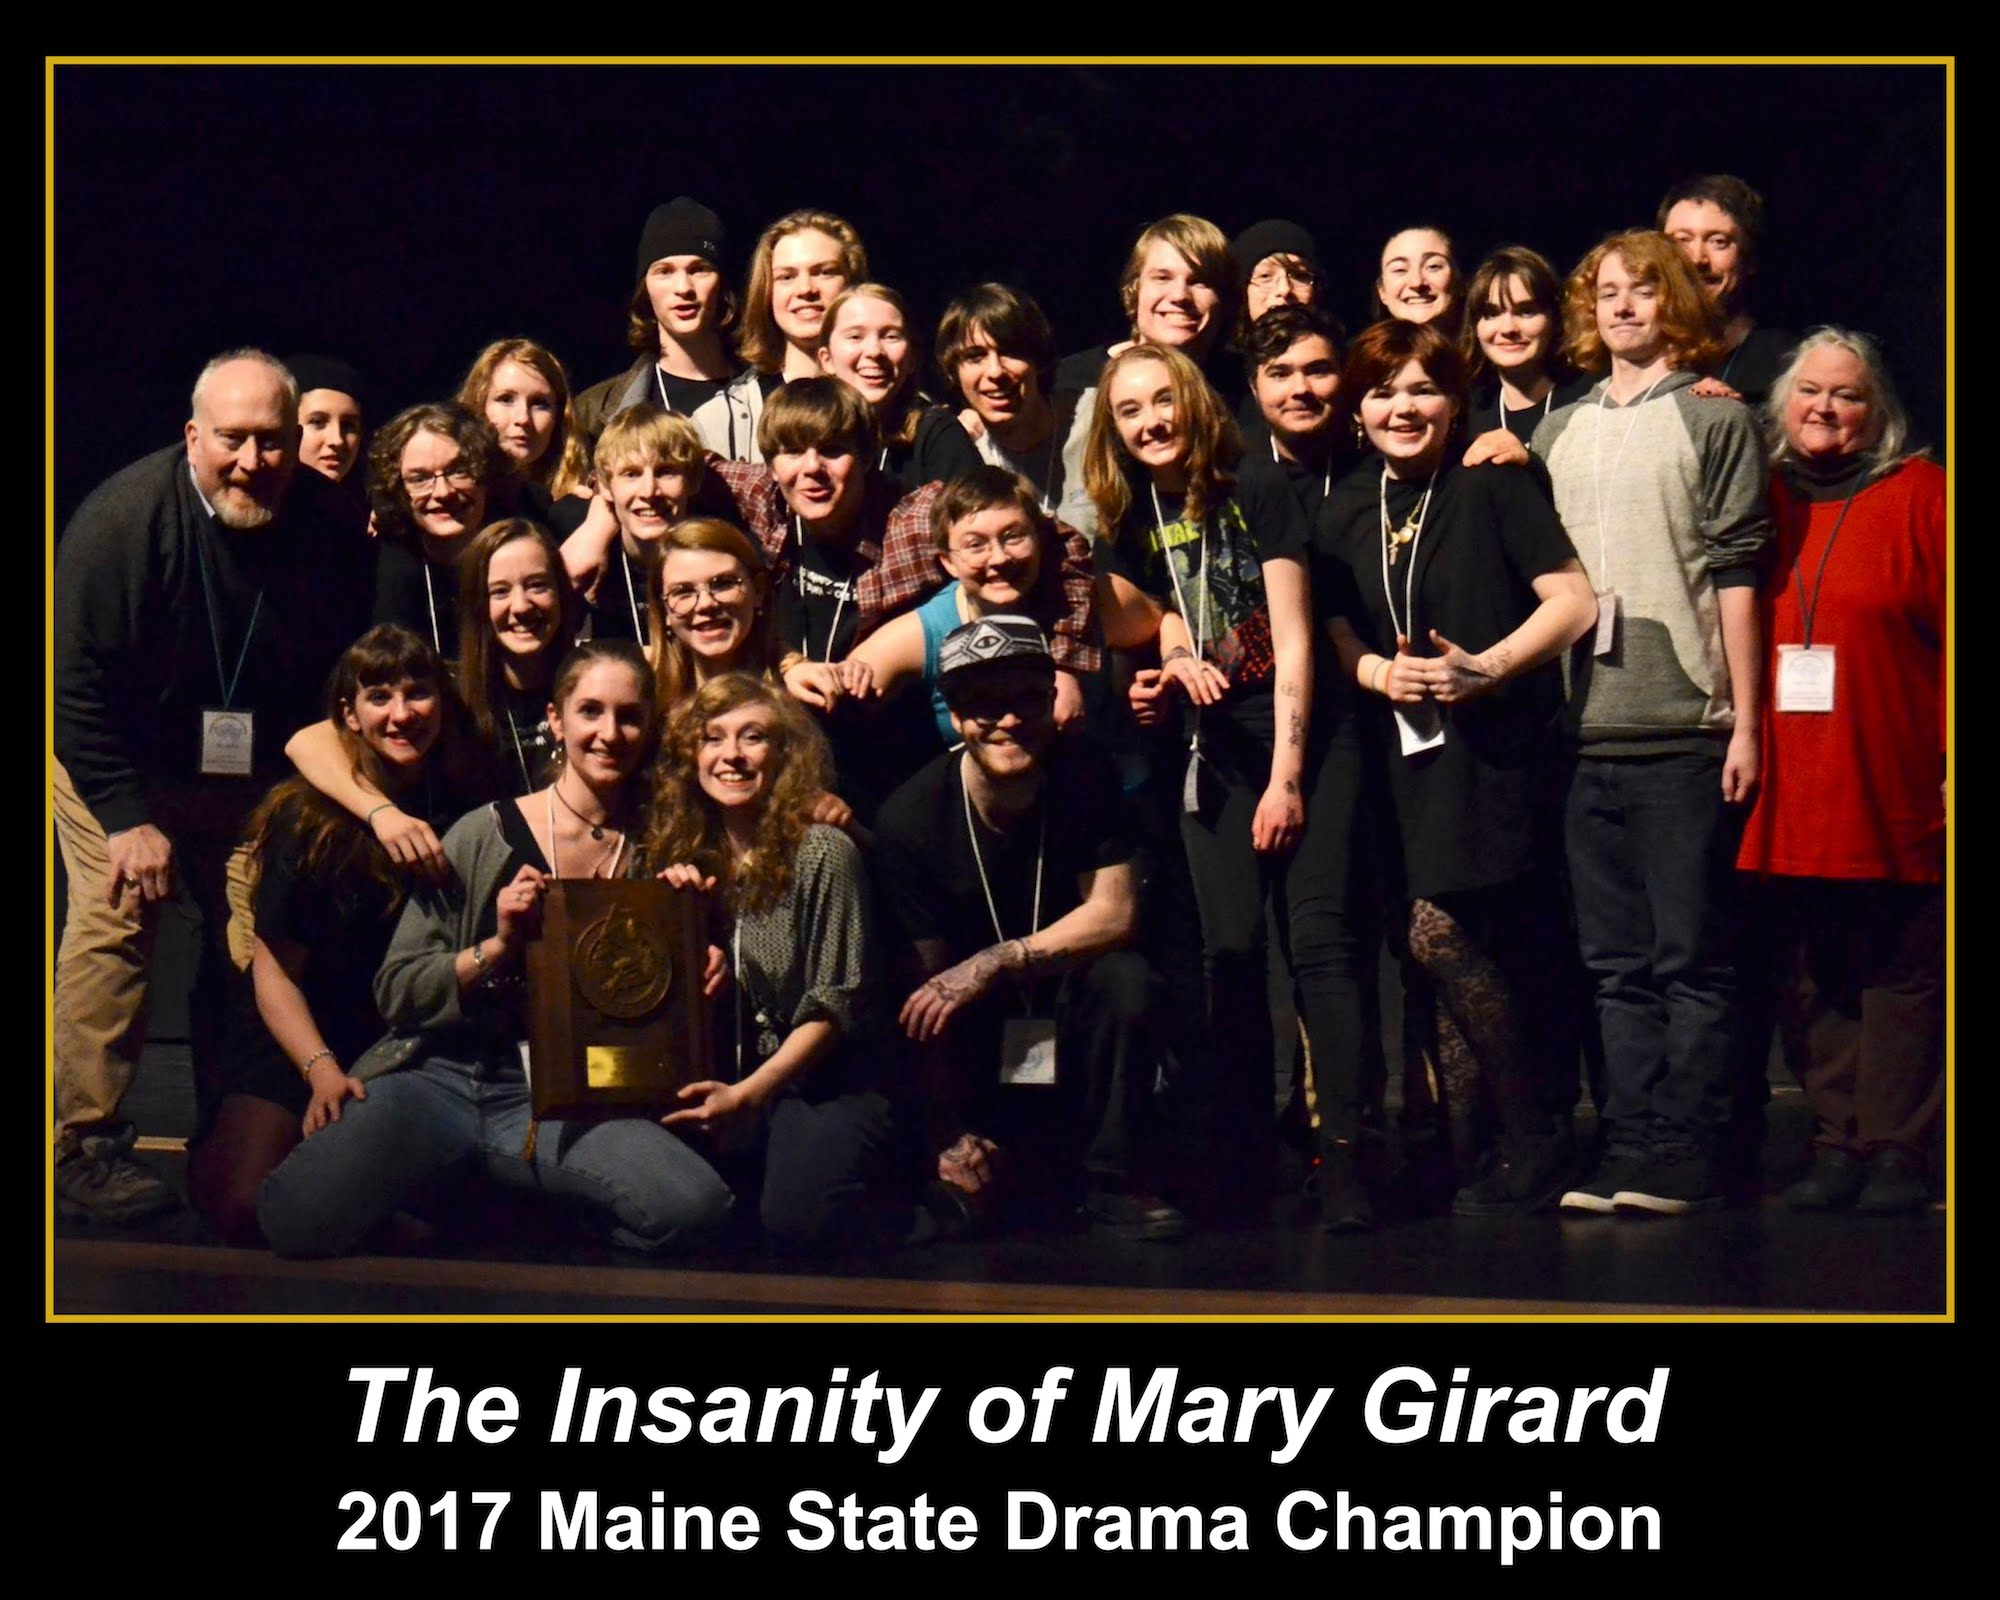 One Act 2017 - 'The Insanity of Mary Girard' by Lanie Robertson